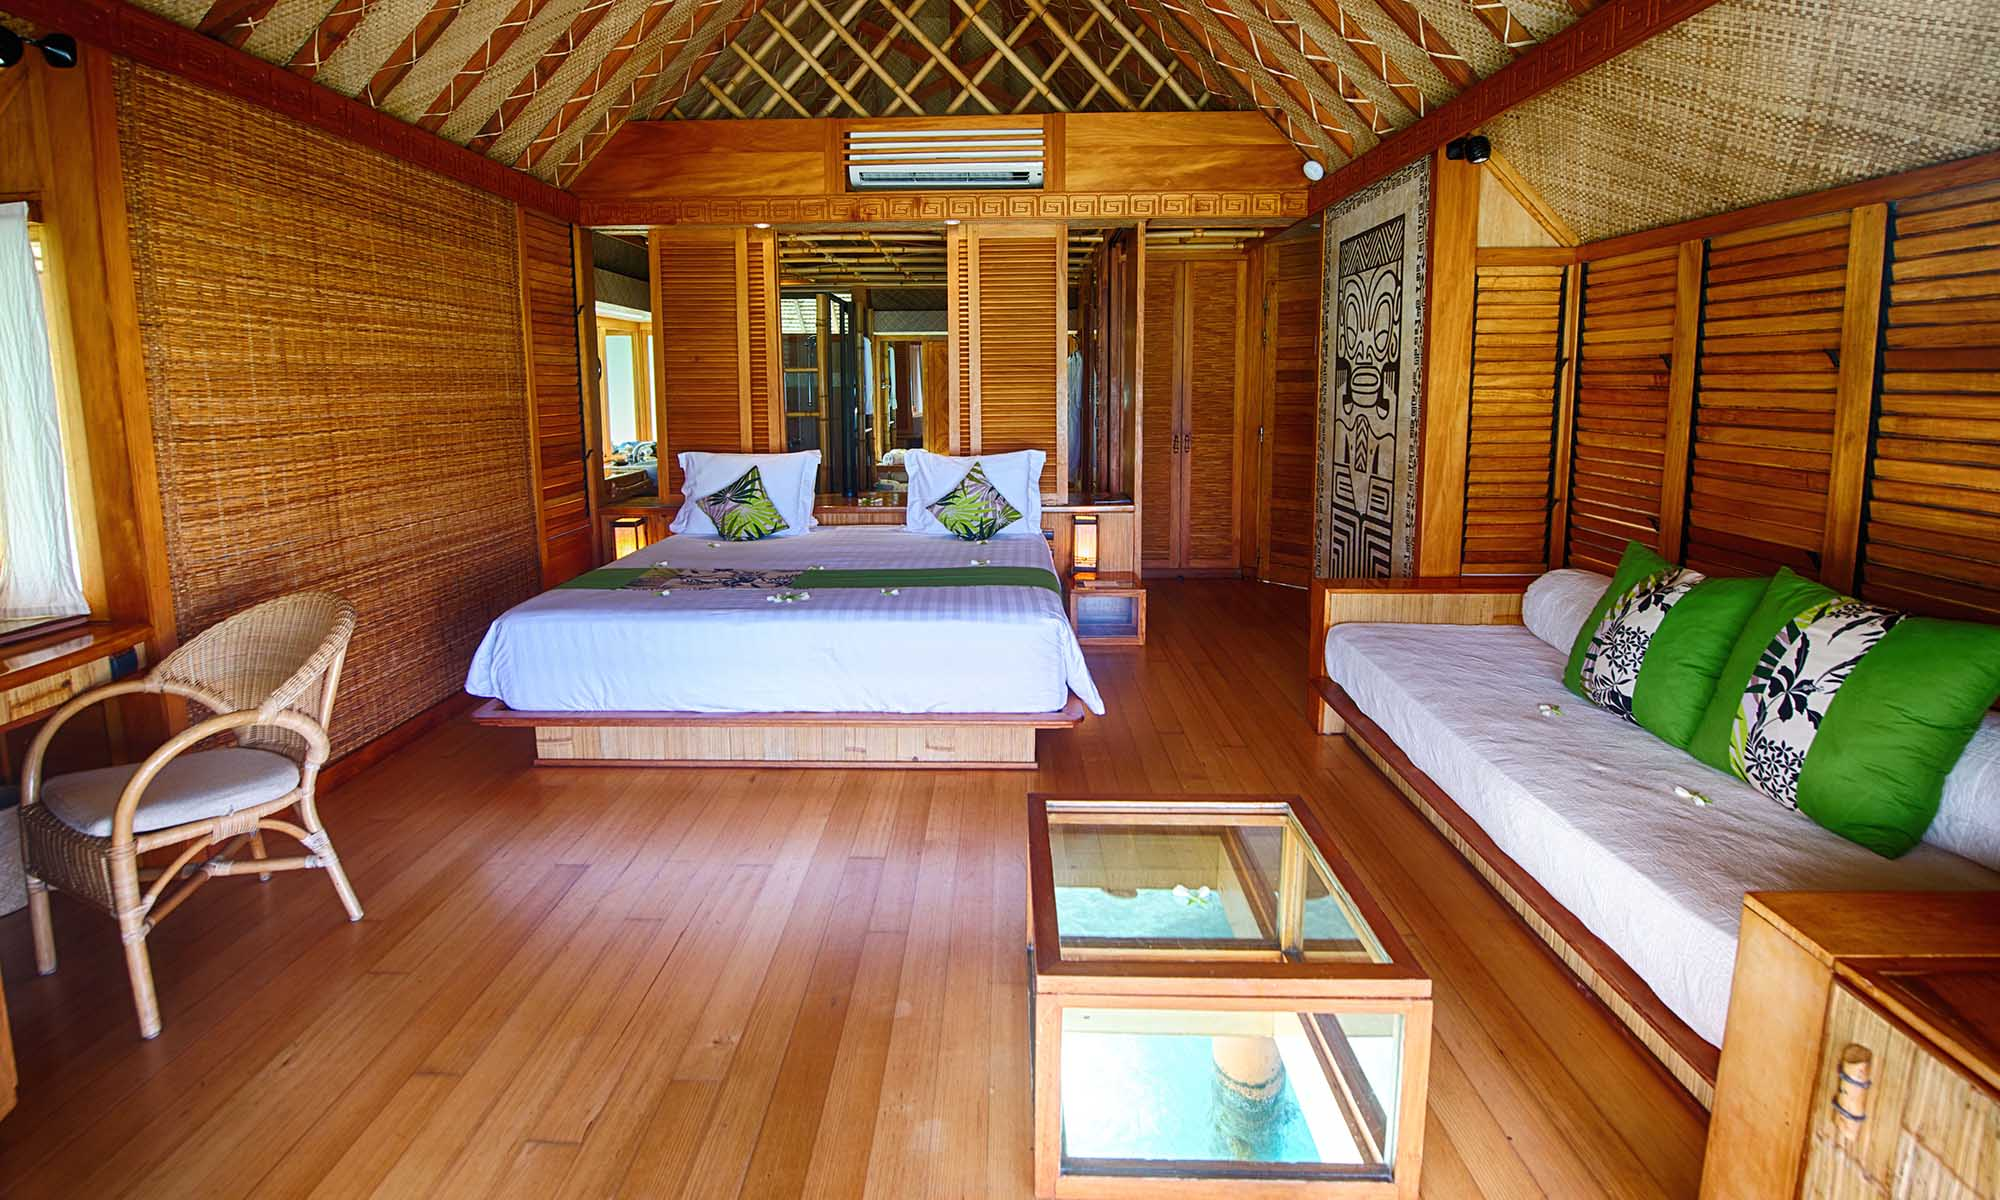 Bora Bora Pearl Beach Resort & Spa, Overwater Bungalow Interior